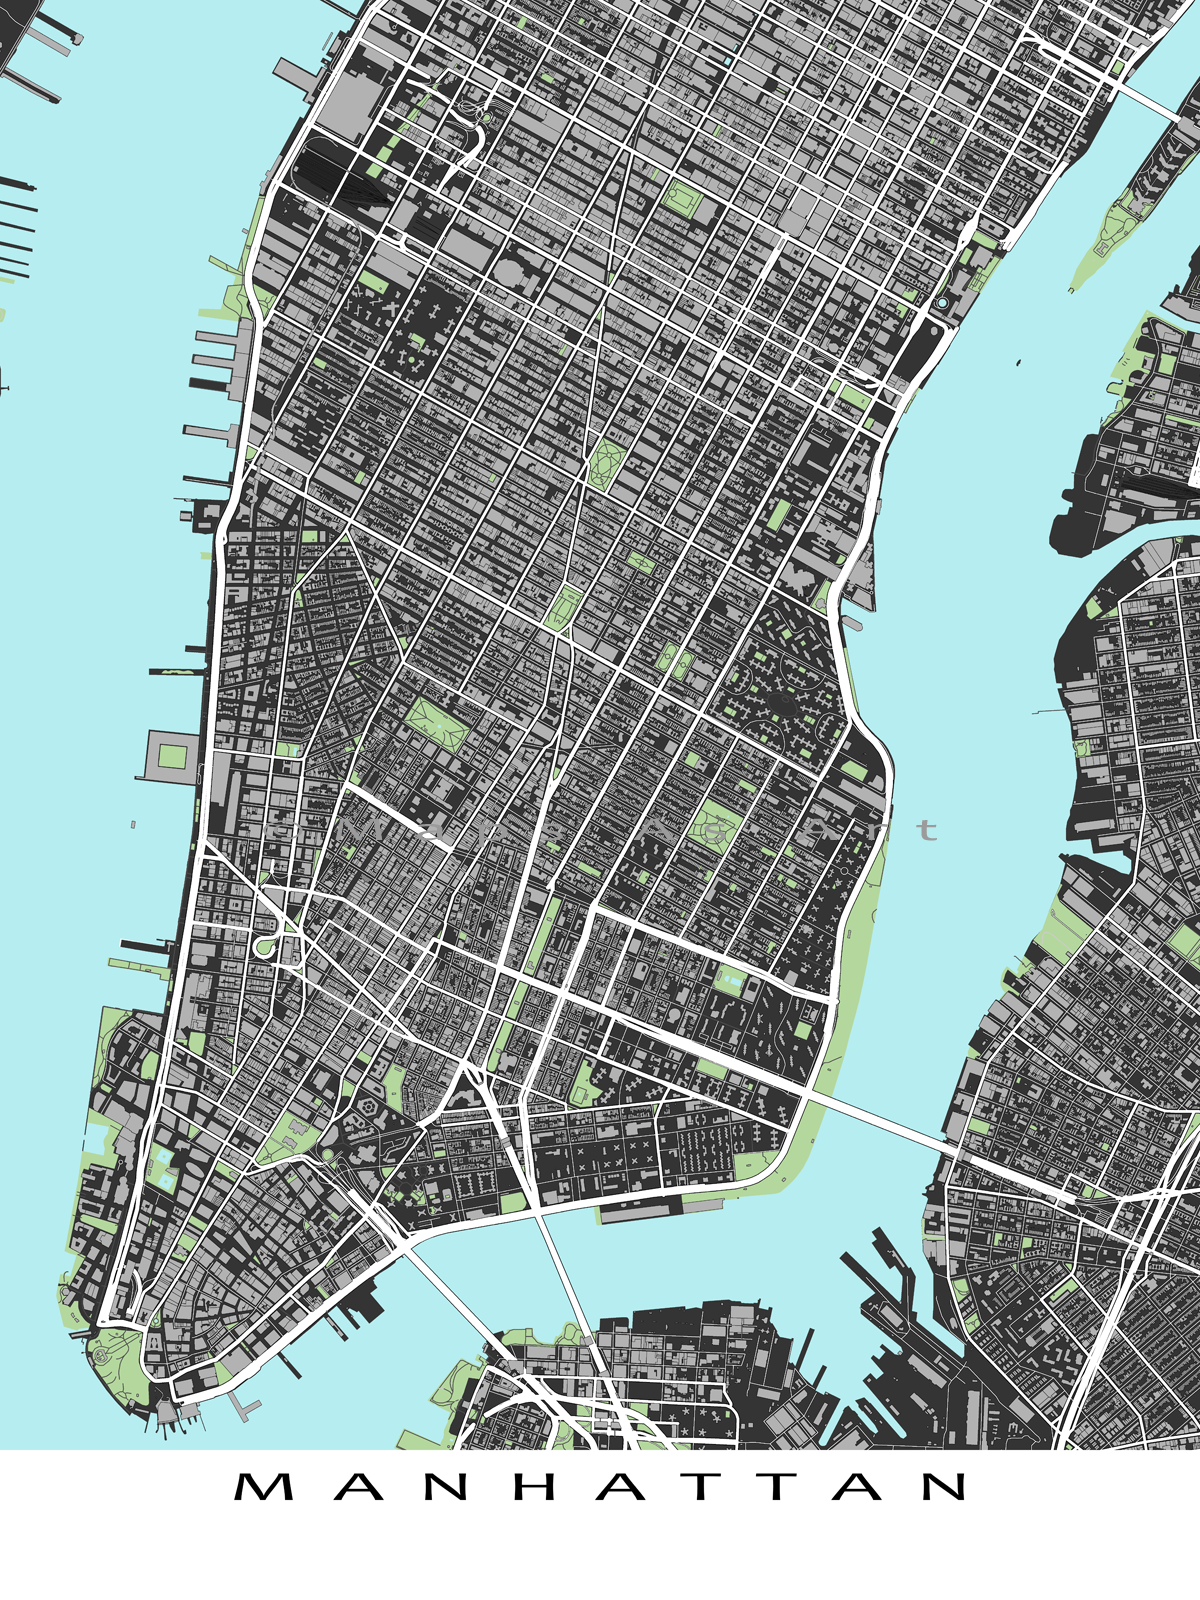 This Lower Manhattan Street Map Has Shows Buildings Buildings - Nyc map lower manhattan